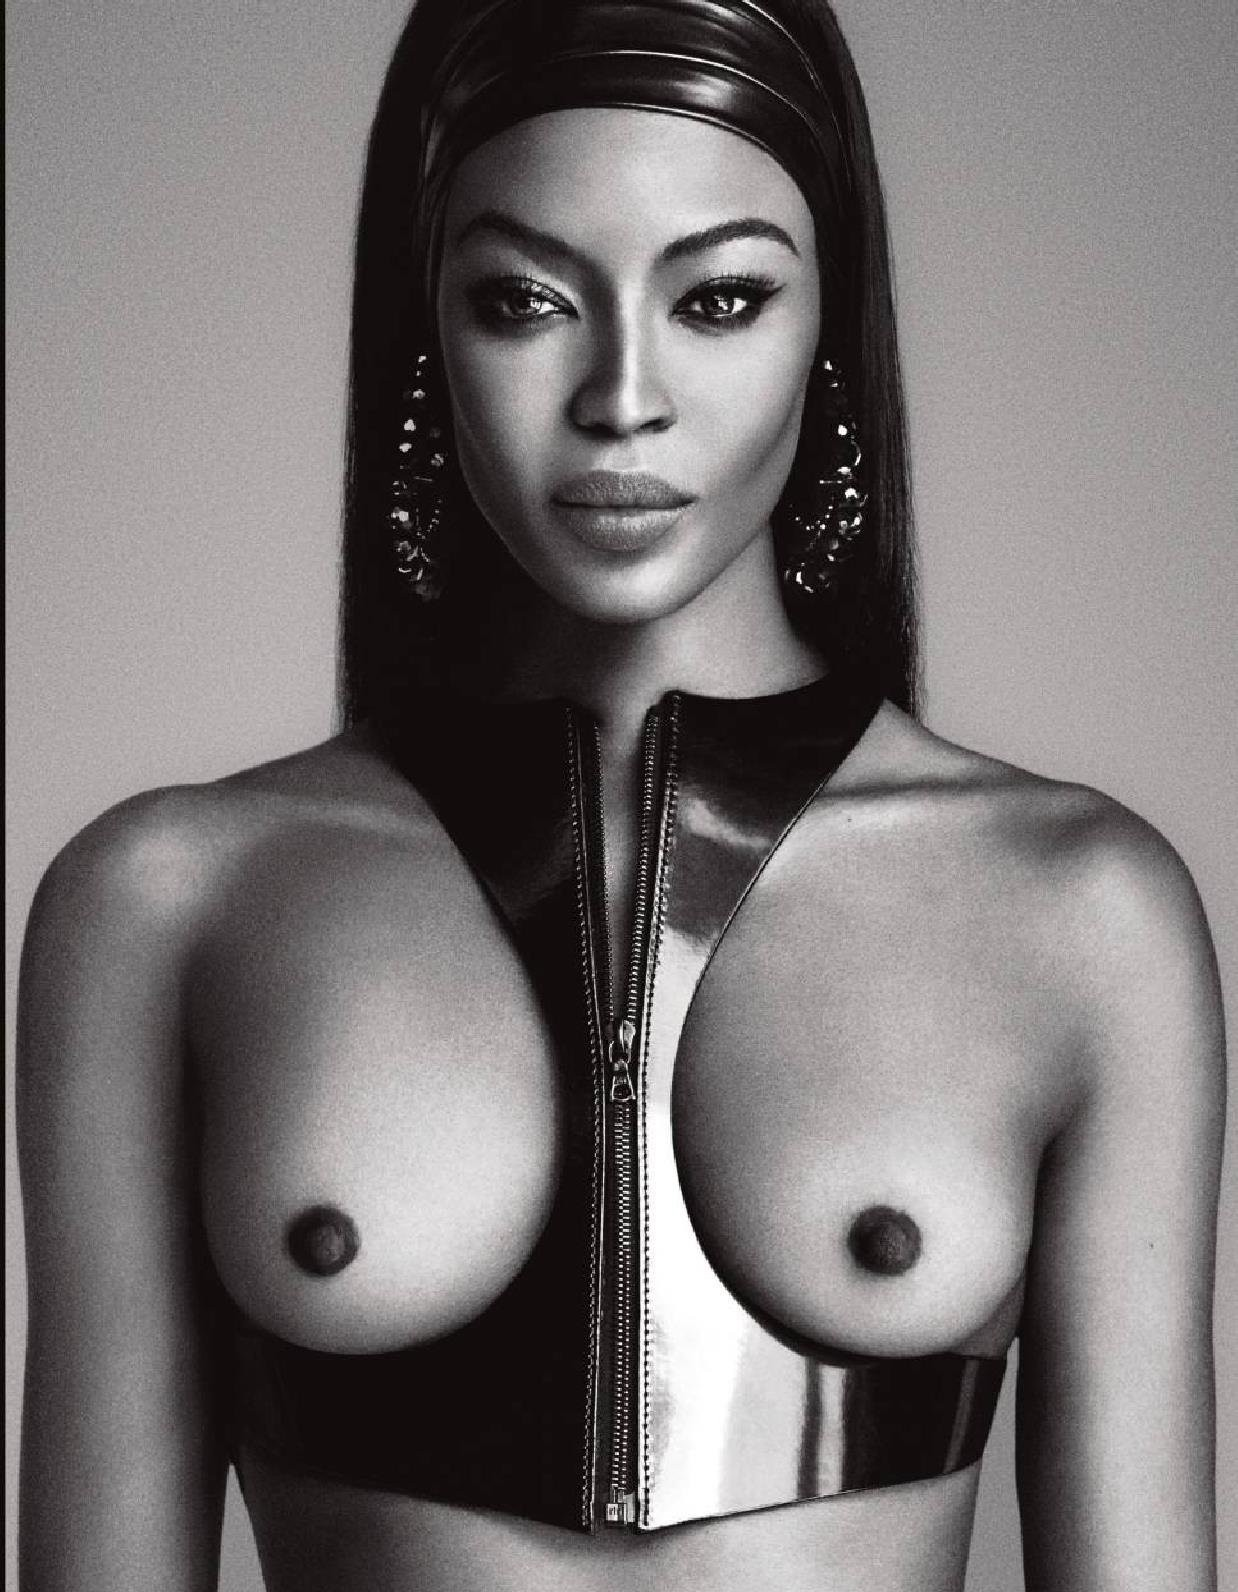 Naomi campbell sex pictures millioncelebs free nude picture